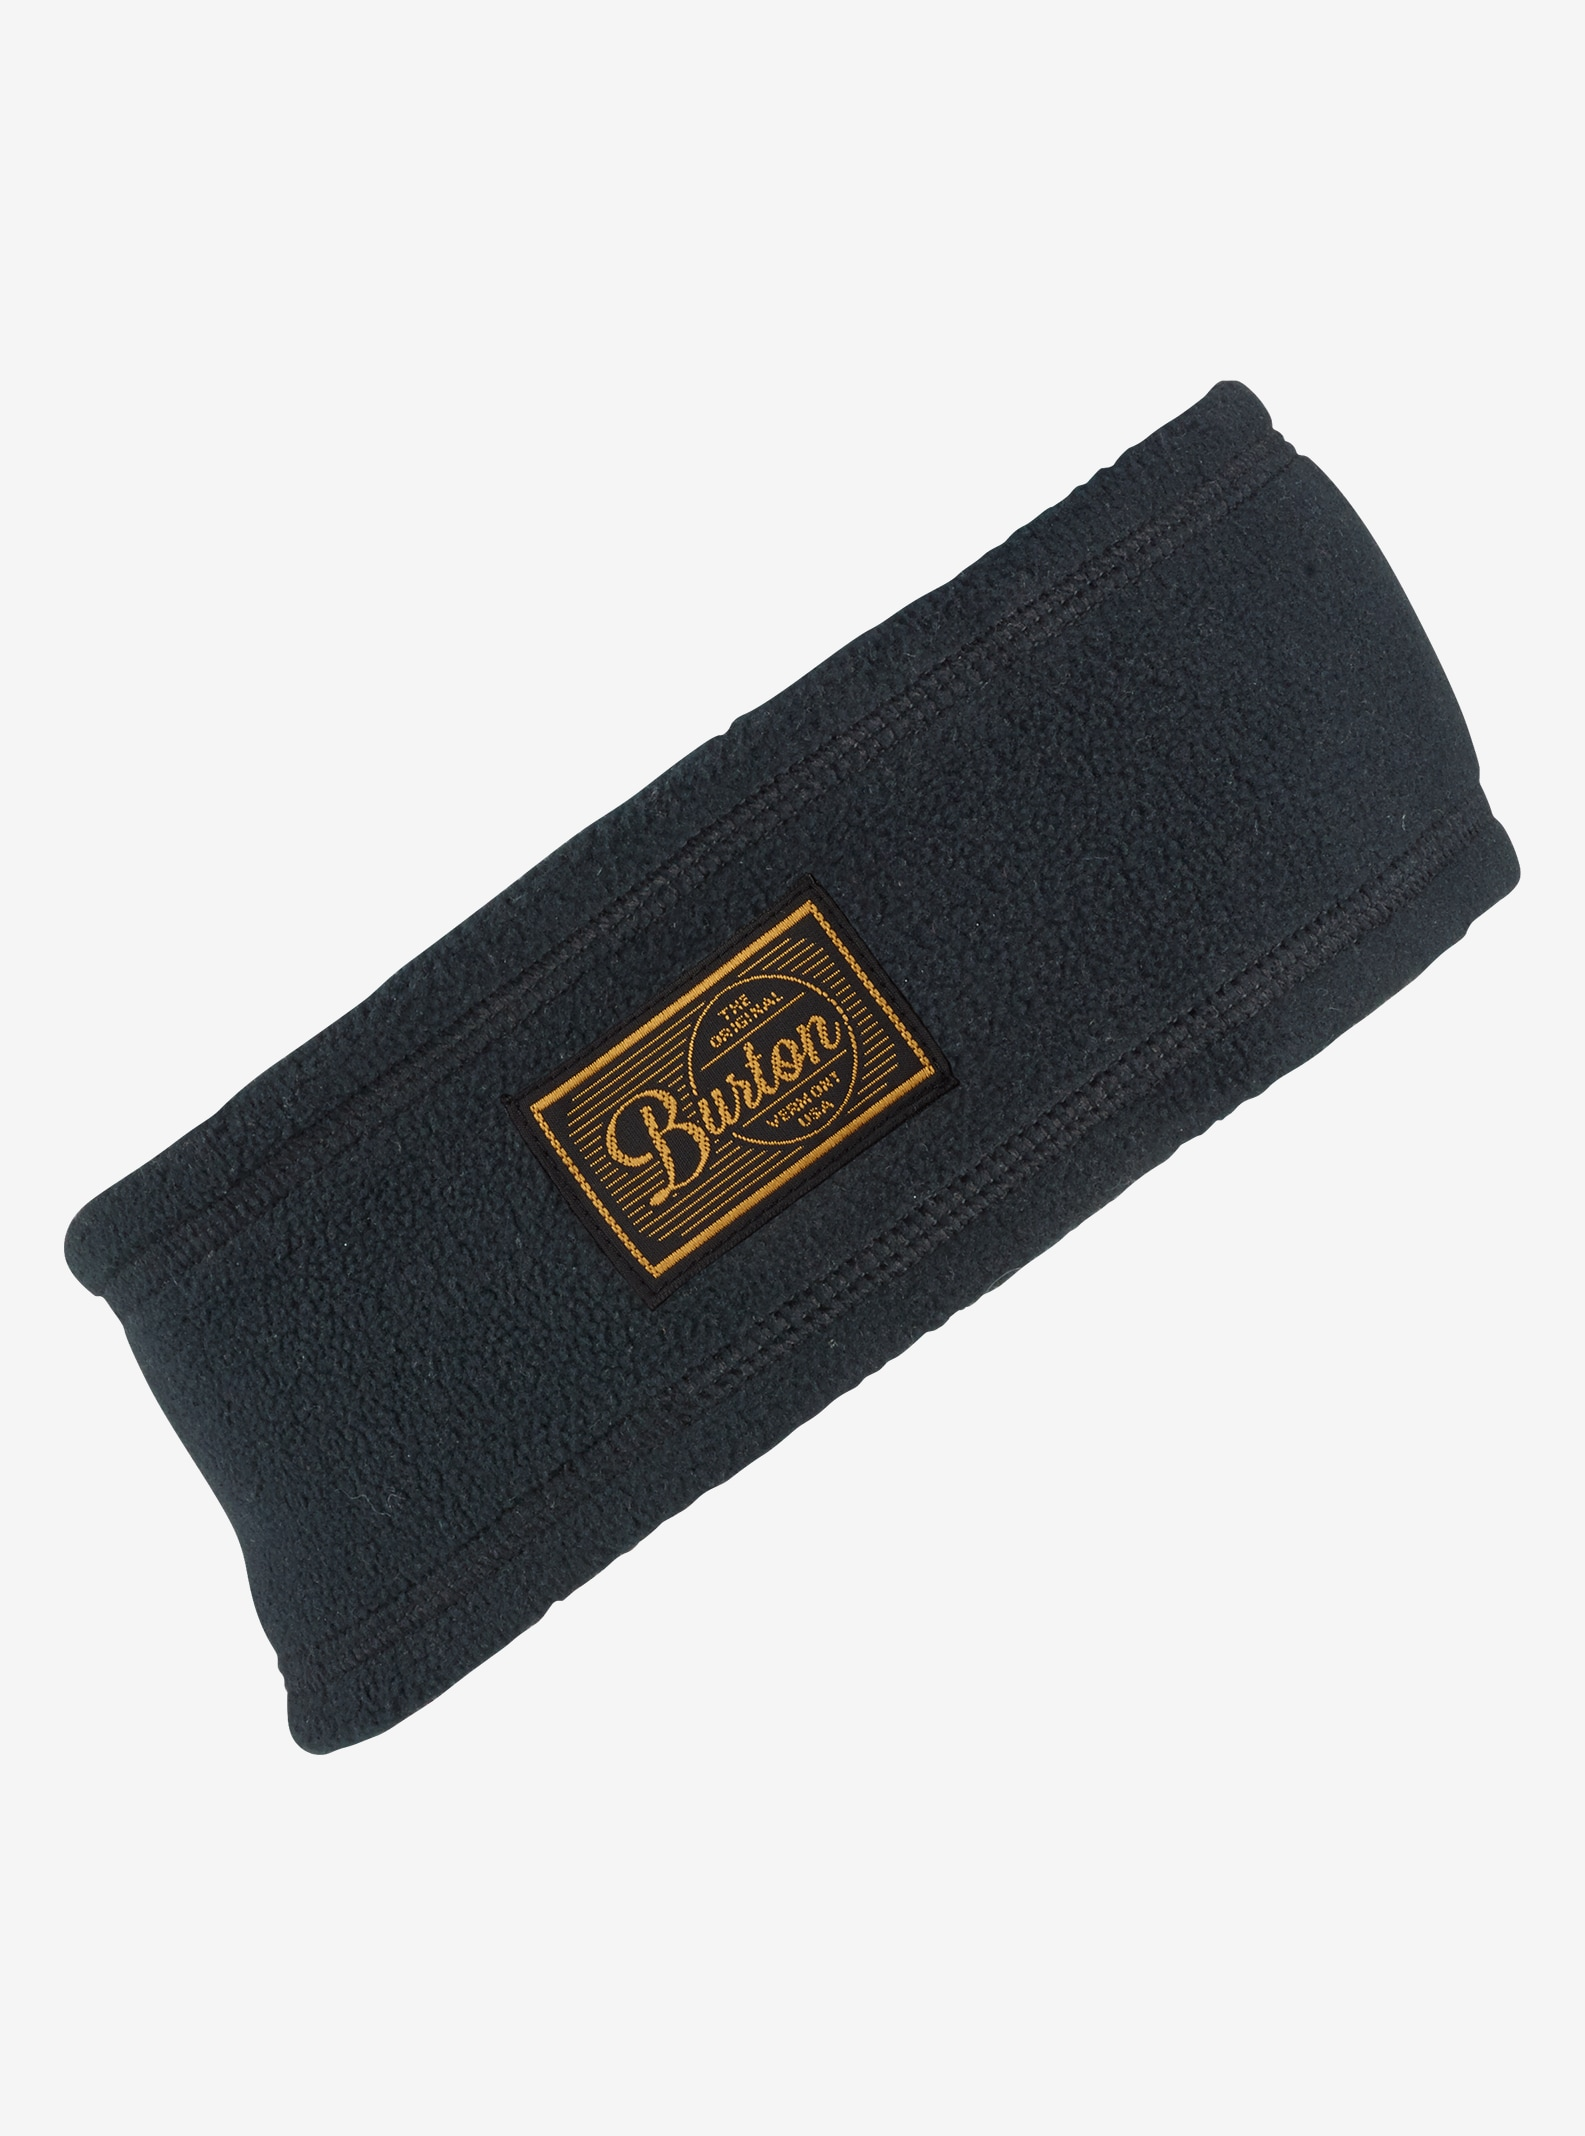 Burton Ember Fleece Headband shown in True Black